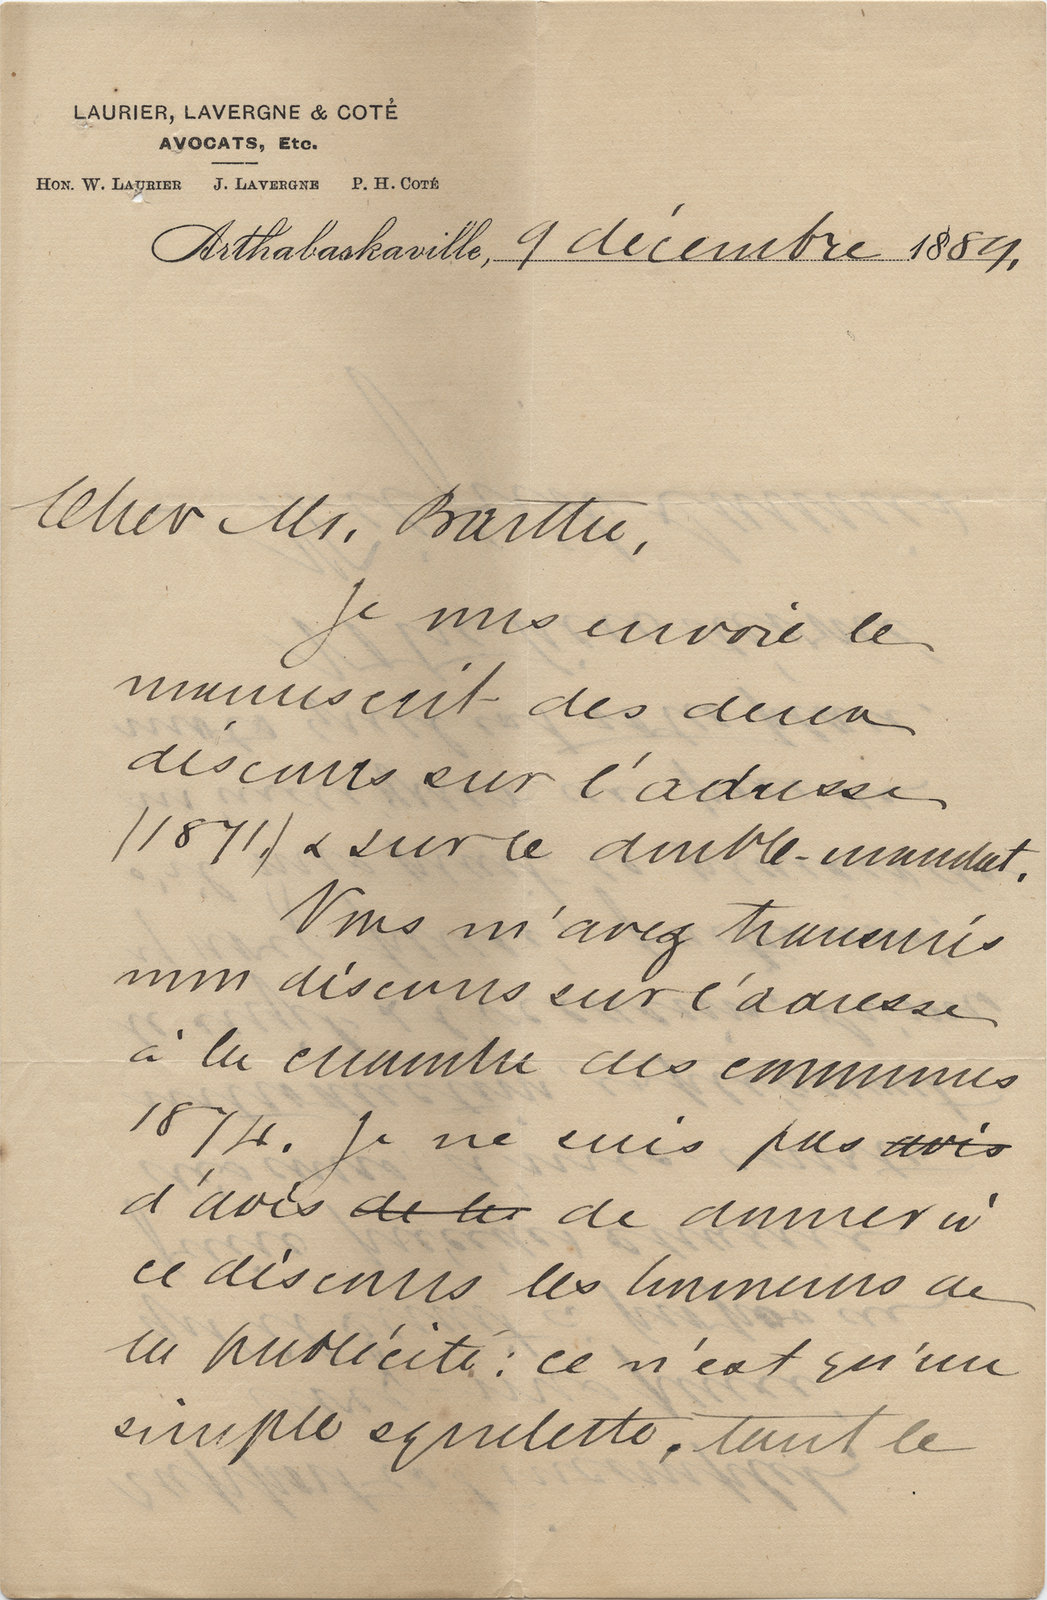 Letter from Wilfrid Laurier to Ulric Barthe, December 9, 1889